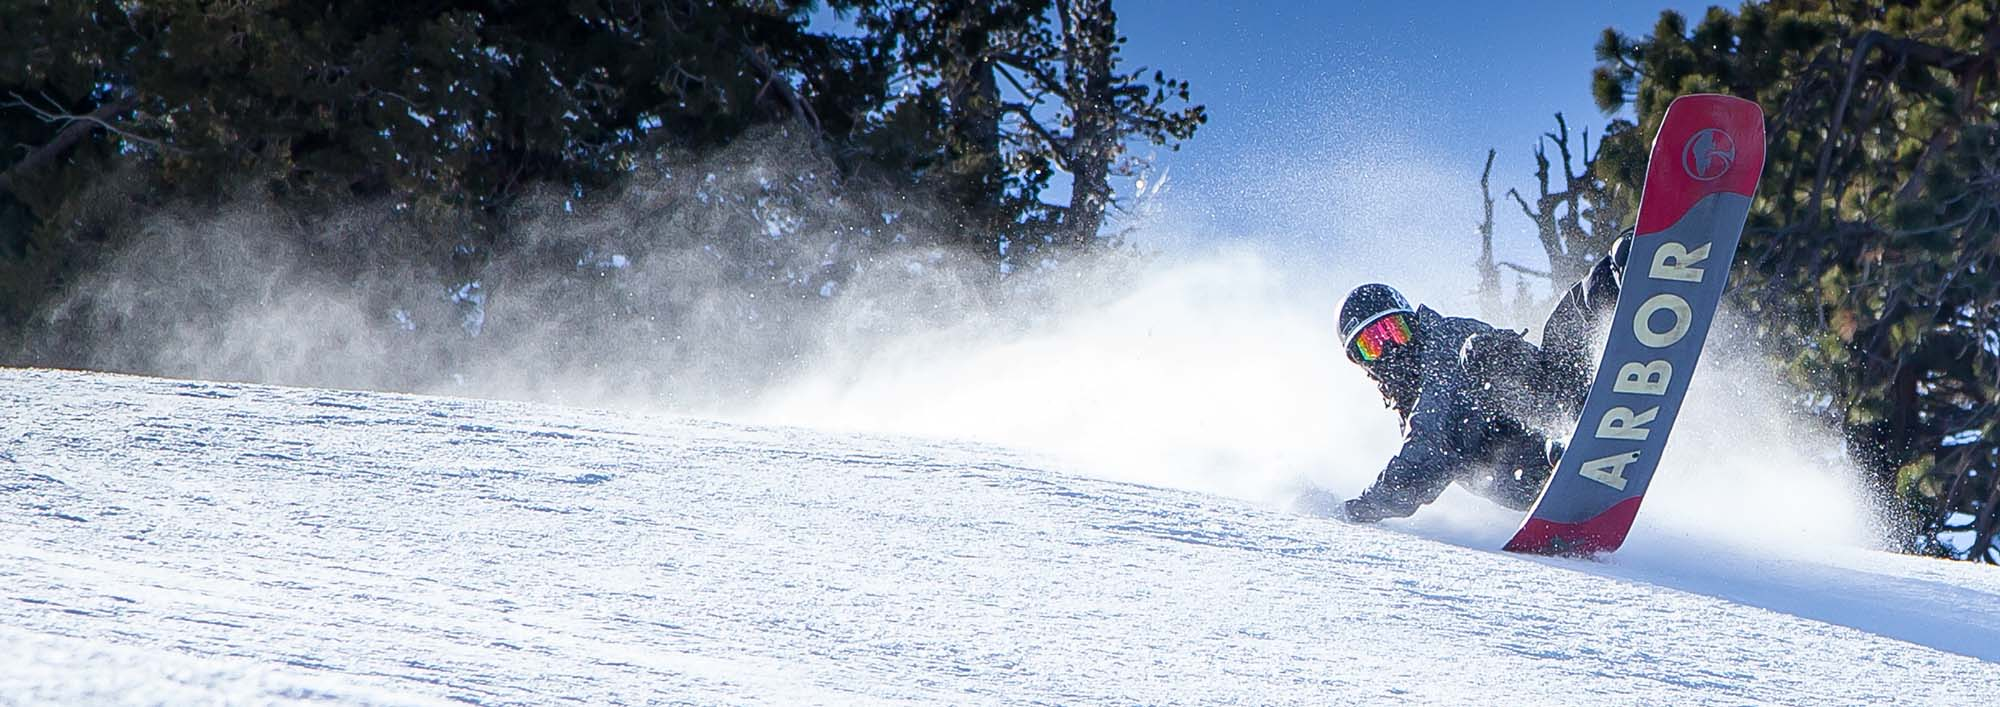 Snowboarder at Big Bear Mountain Resort